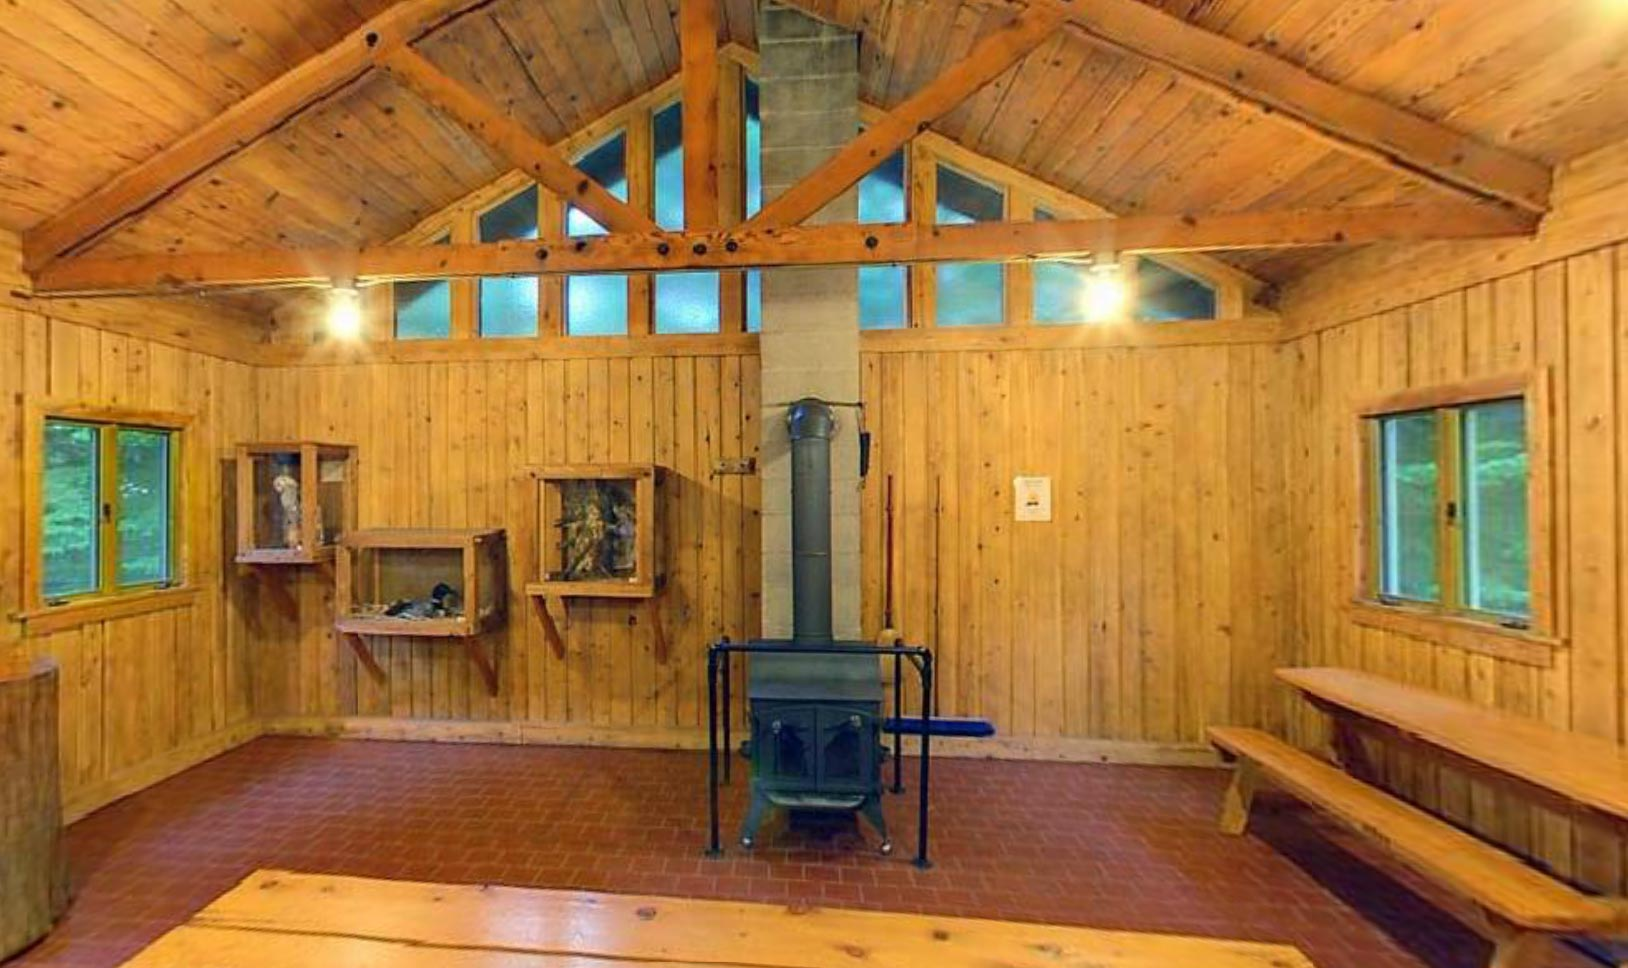 Photo of the wood-paneled trail center, which features picnic tables and a woodstove.